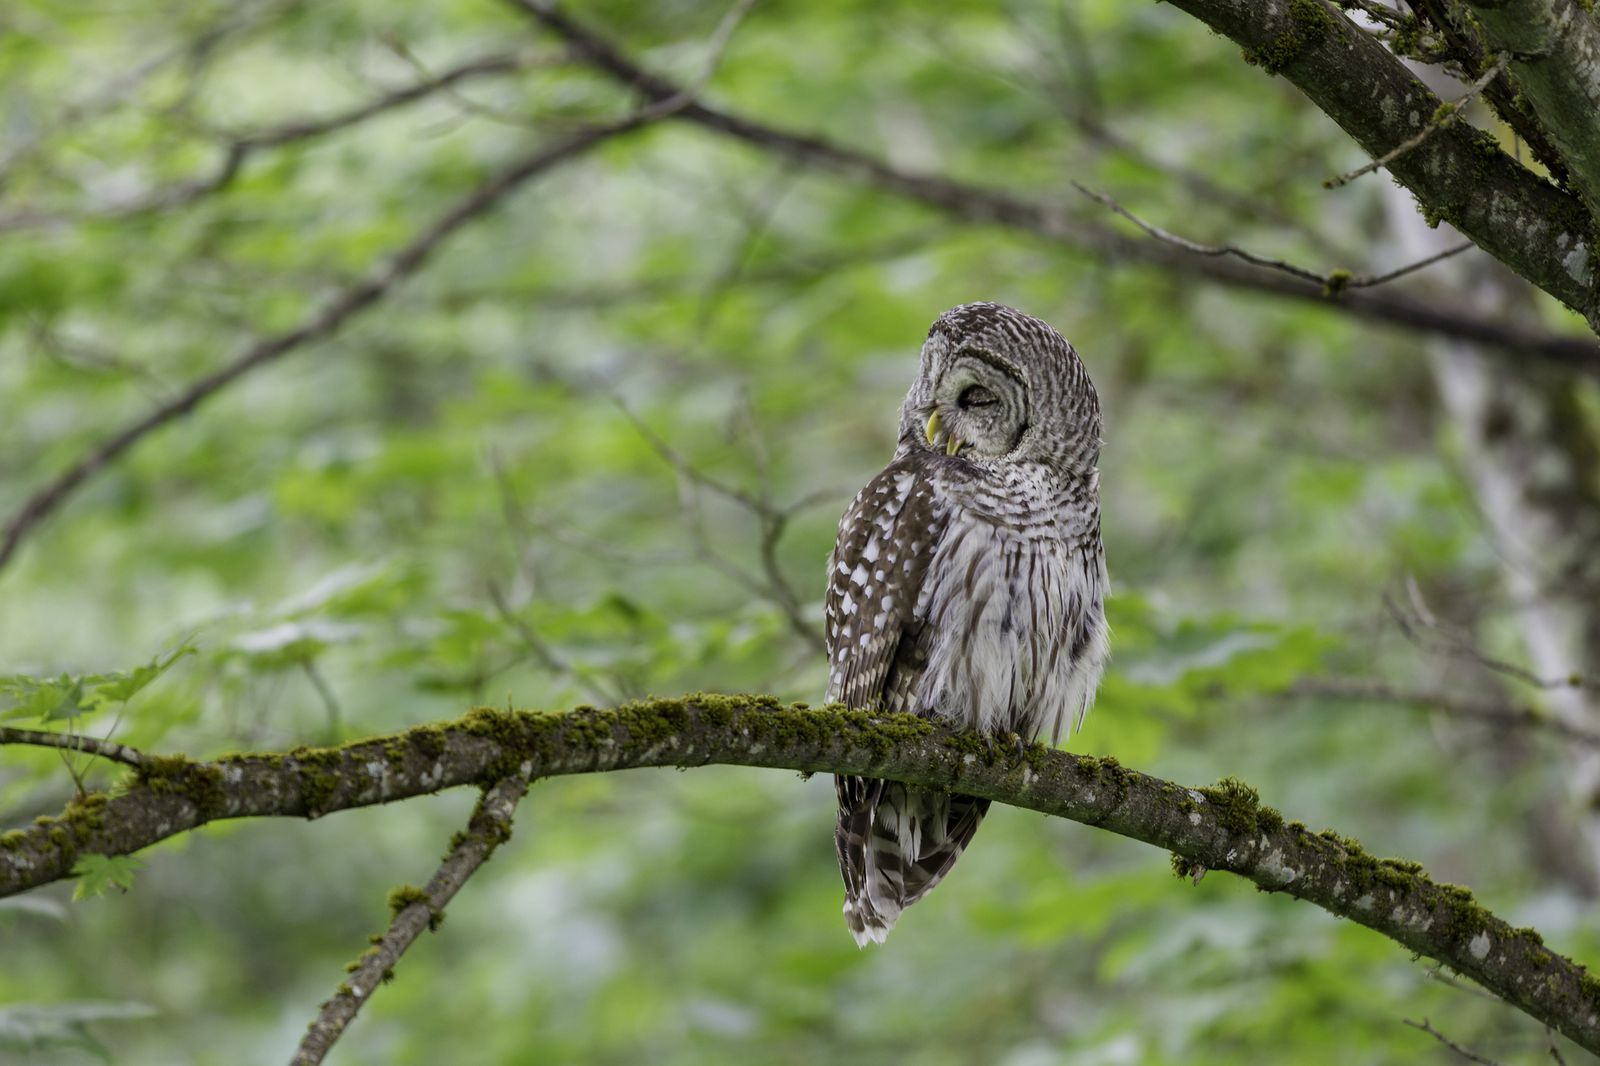 How To Attract Owls To Your Yard With An Owl Box